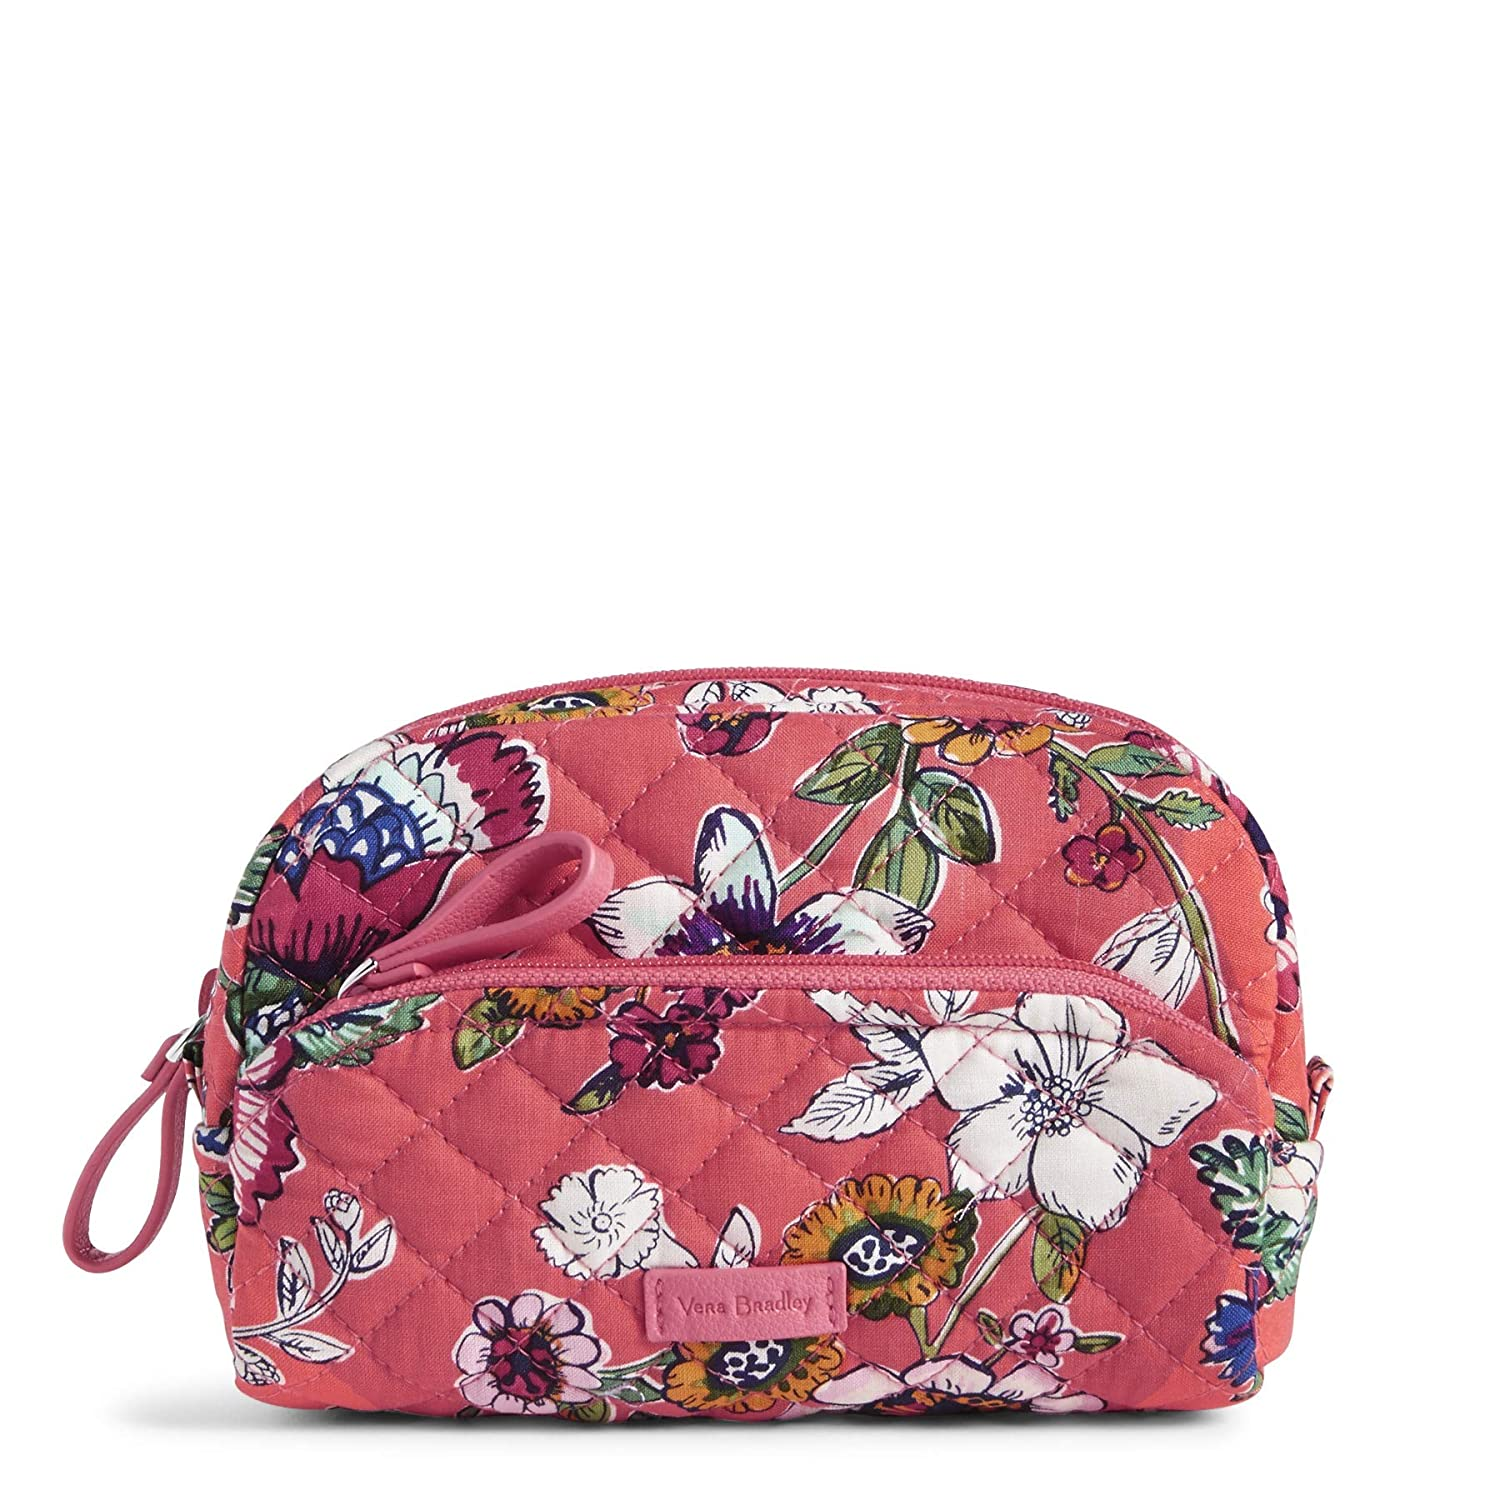 Vera Bradley Women's Signature Cotton Mini Cosmetic Makeup Bag